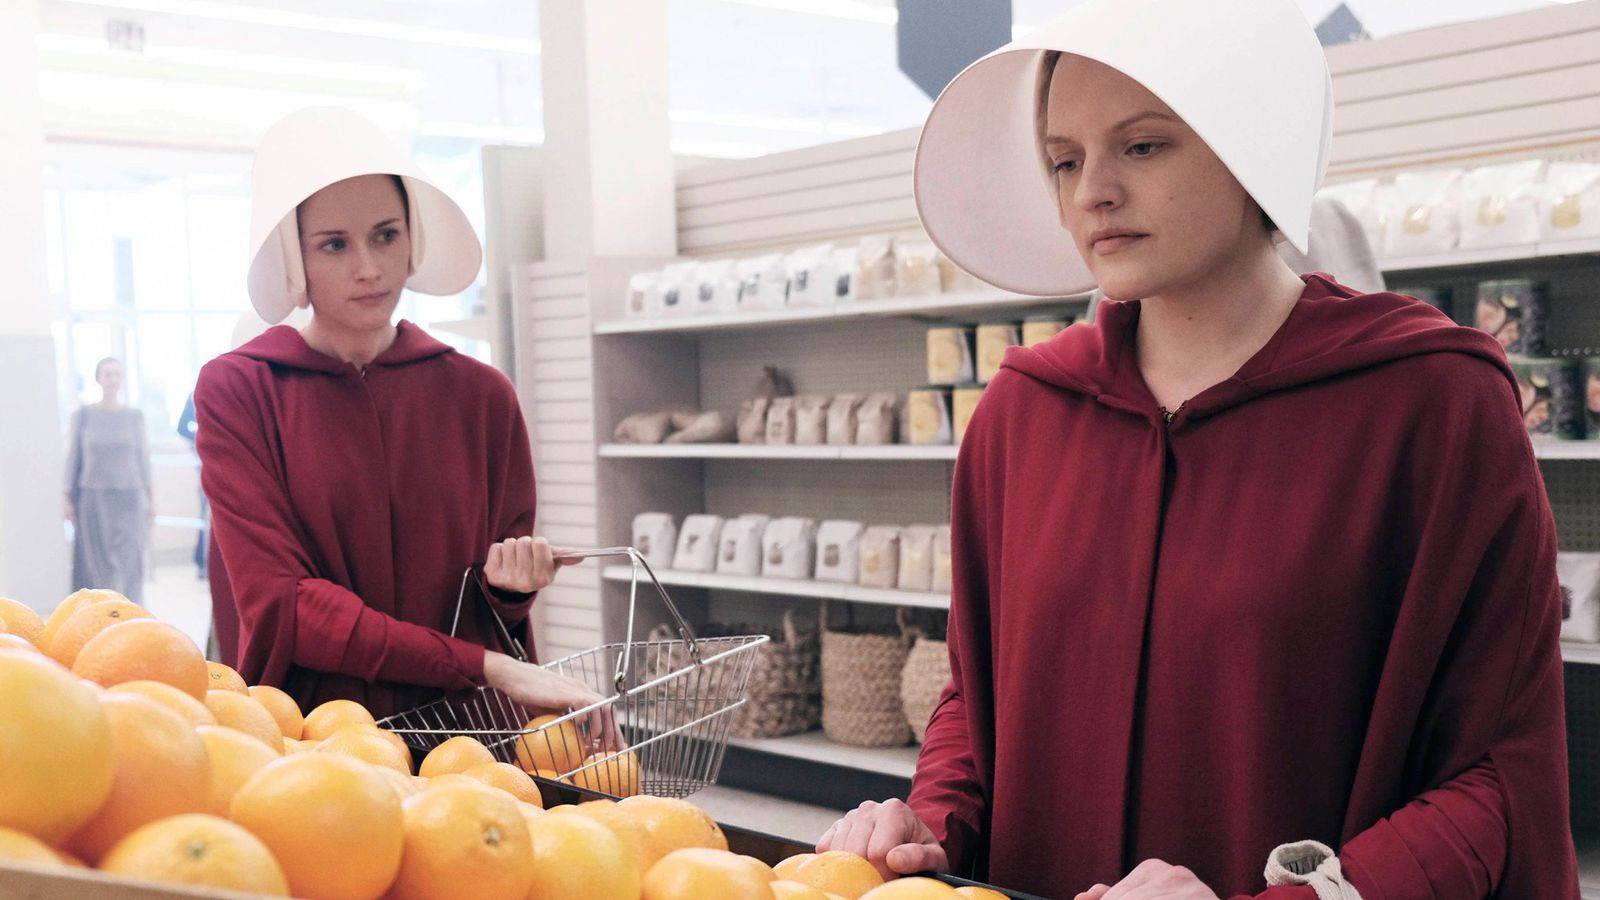 The Handmaid's Tale gets renewed for a second season